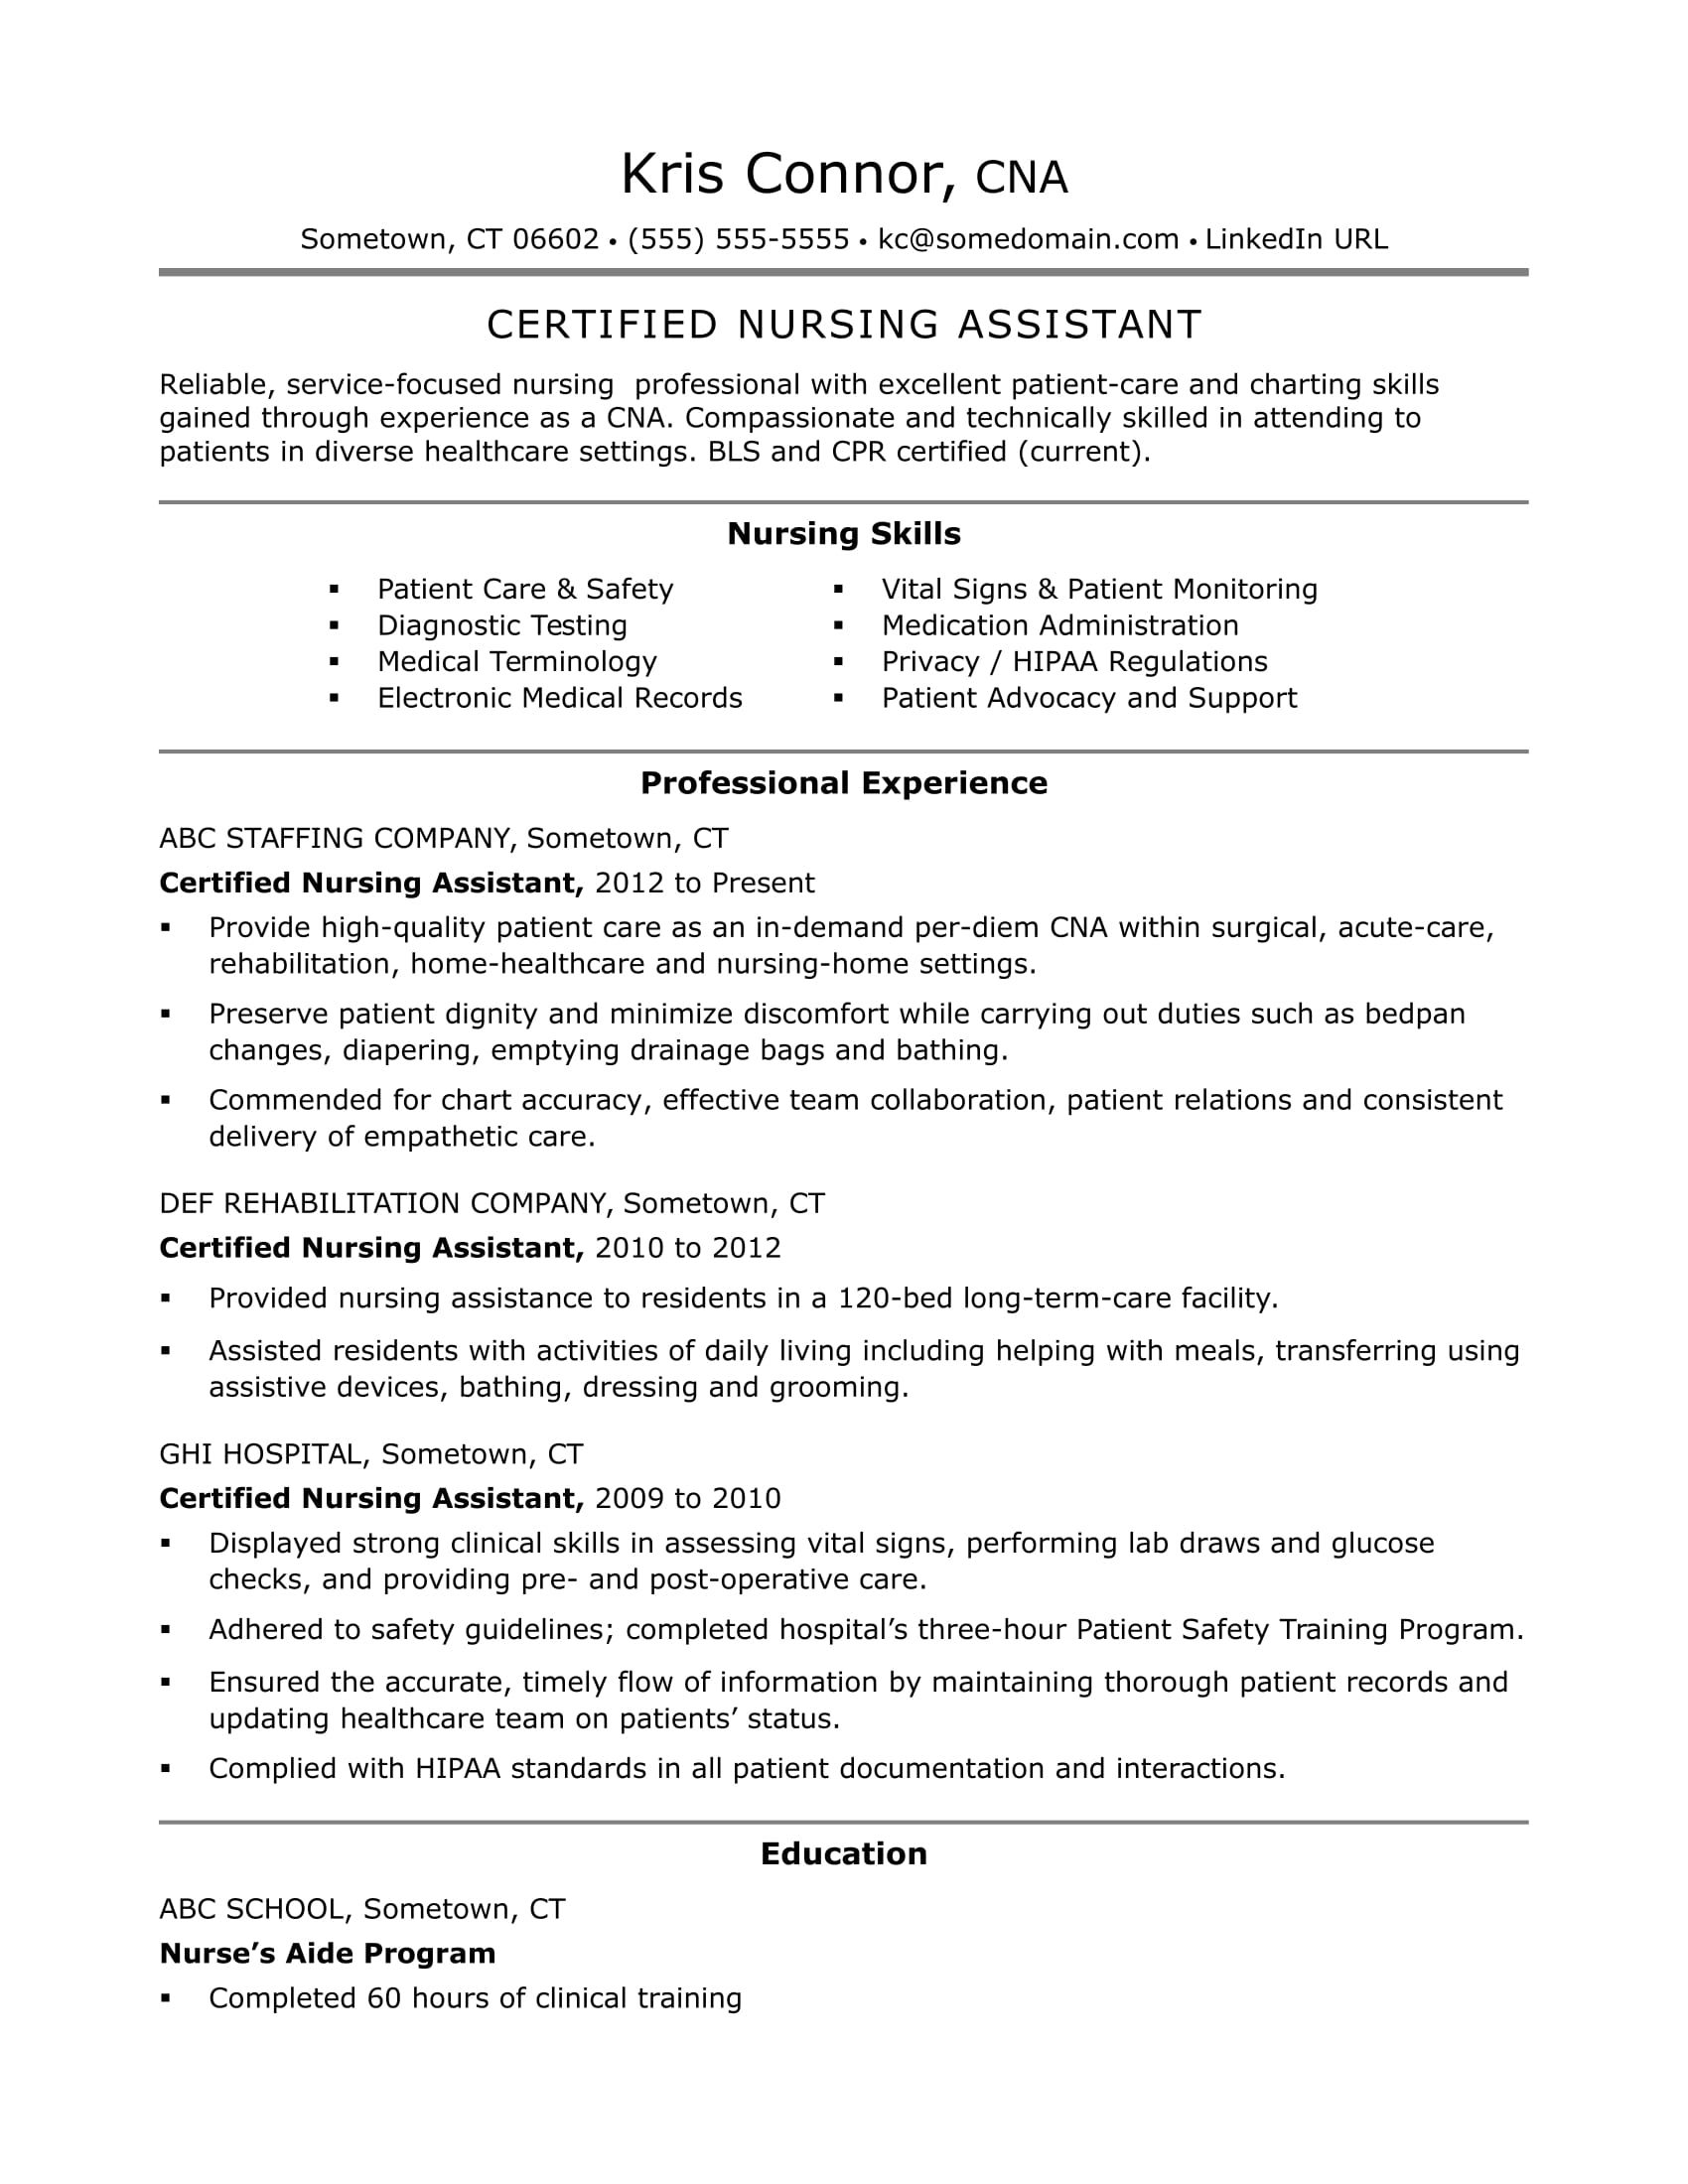 Attractive CNA Resume Example Regarding Cna Job Description Resume